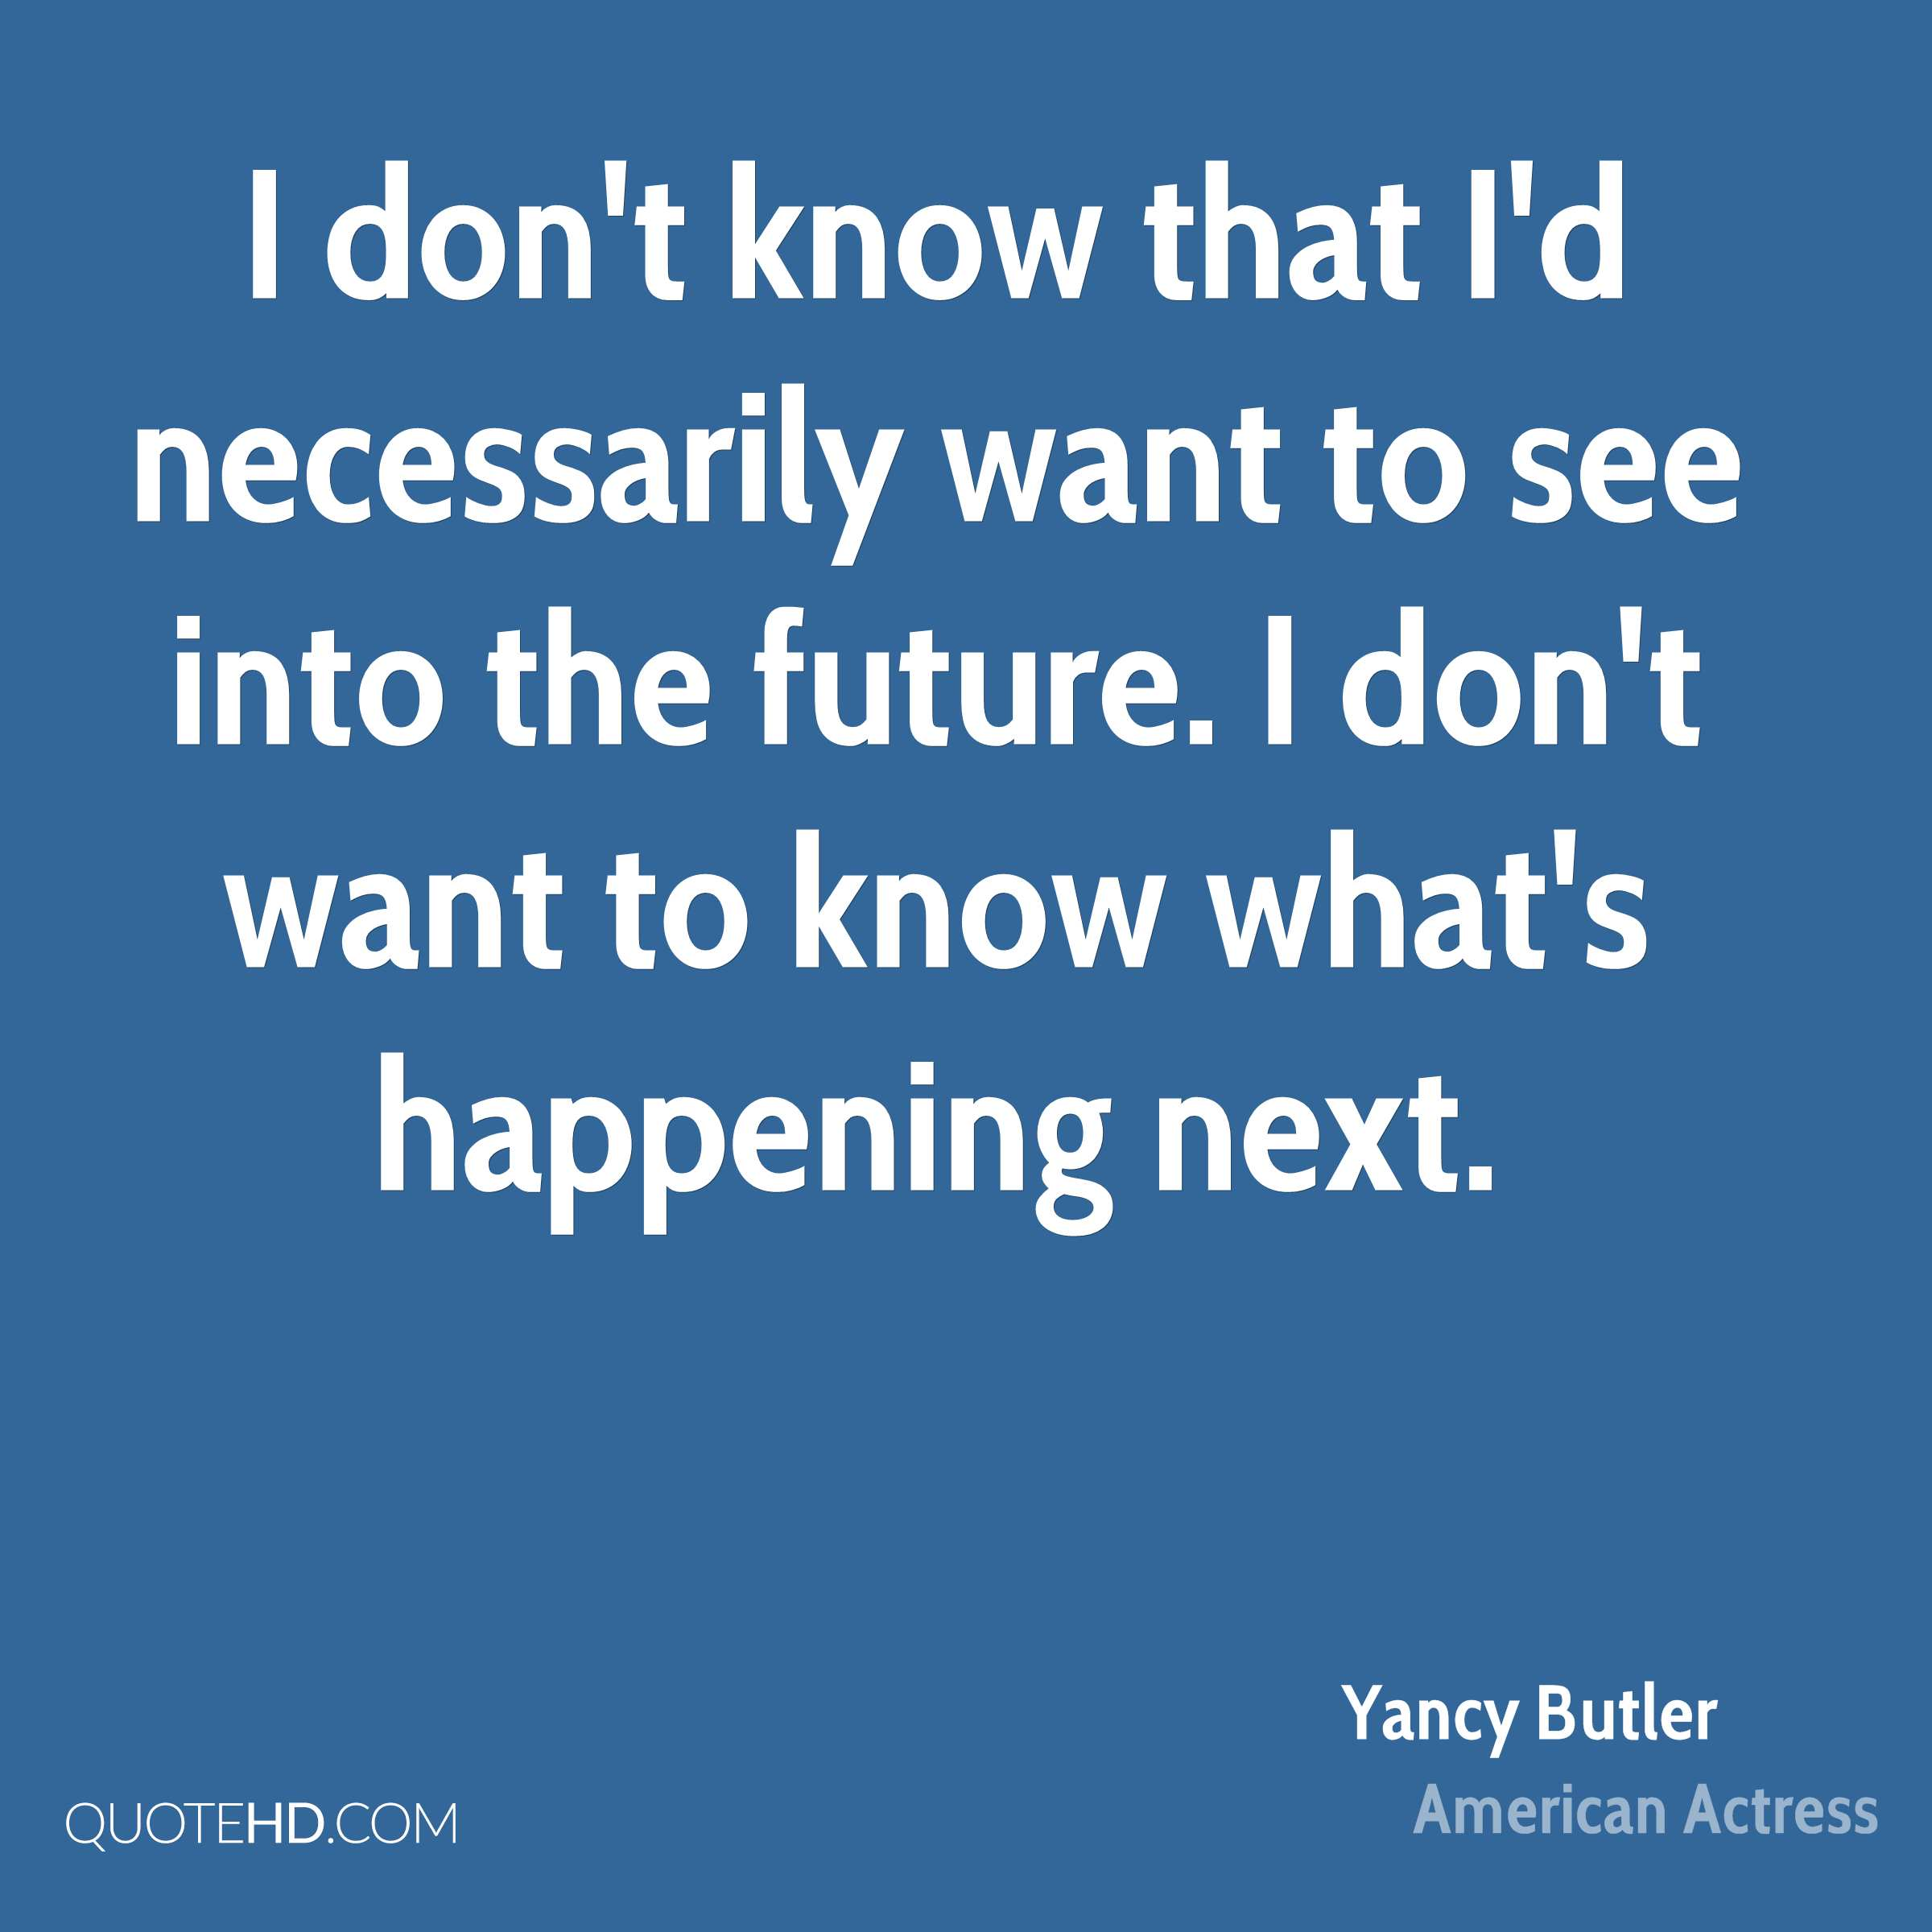 I don't know that I'd necessarily want to see into the future. I don't want to know what's happening next.